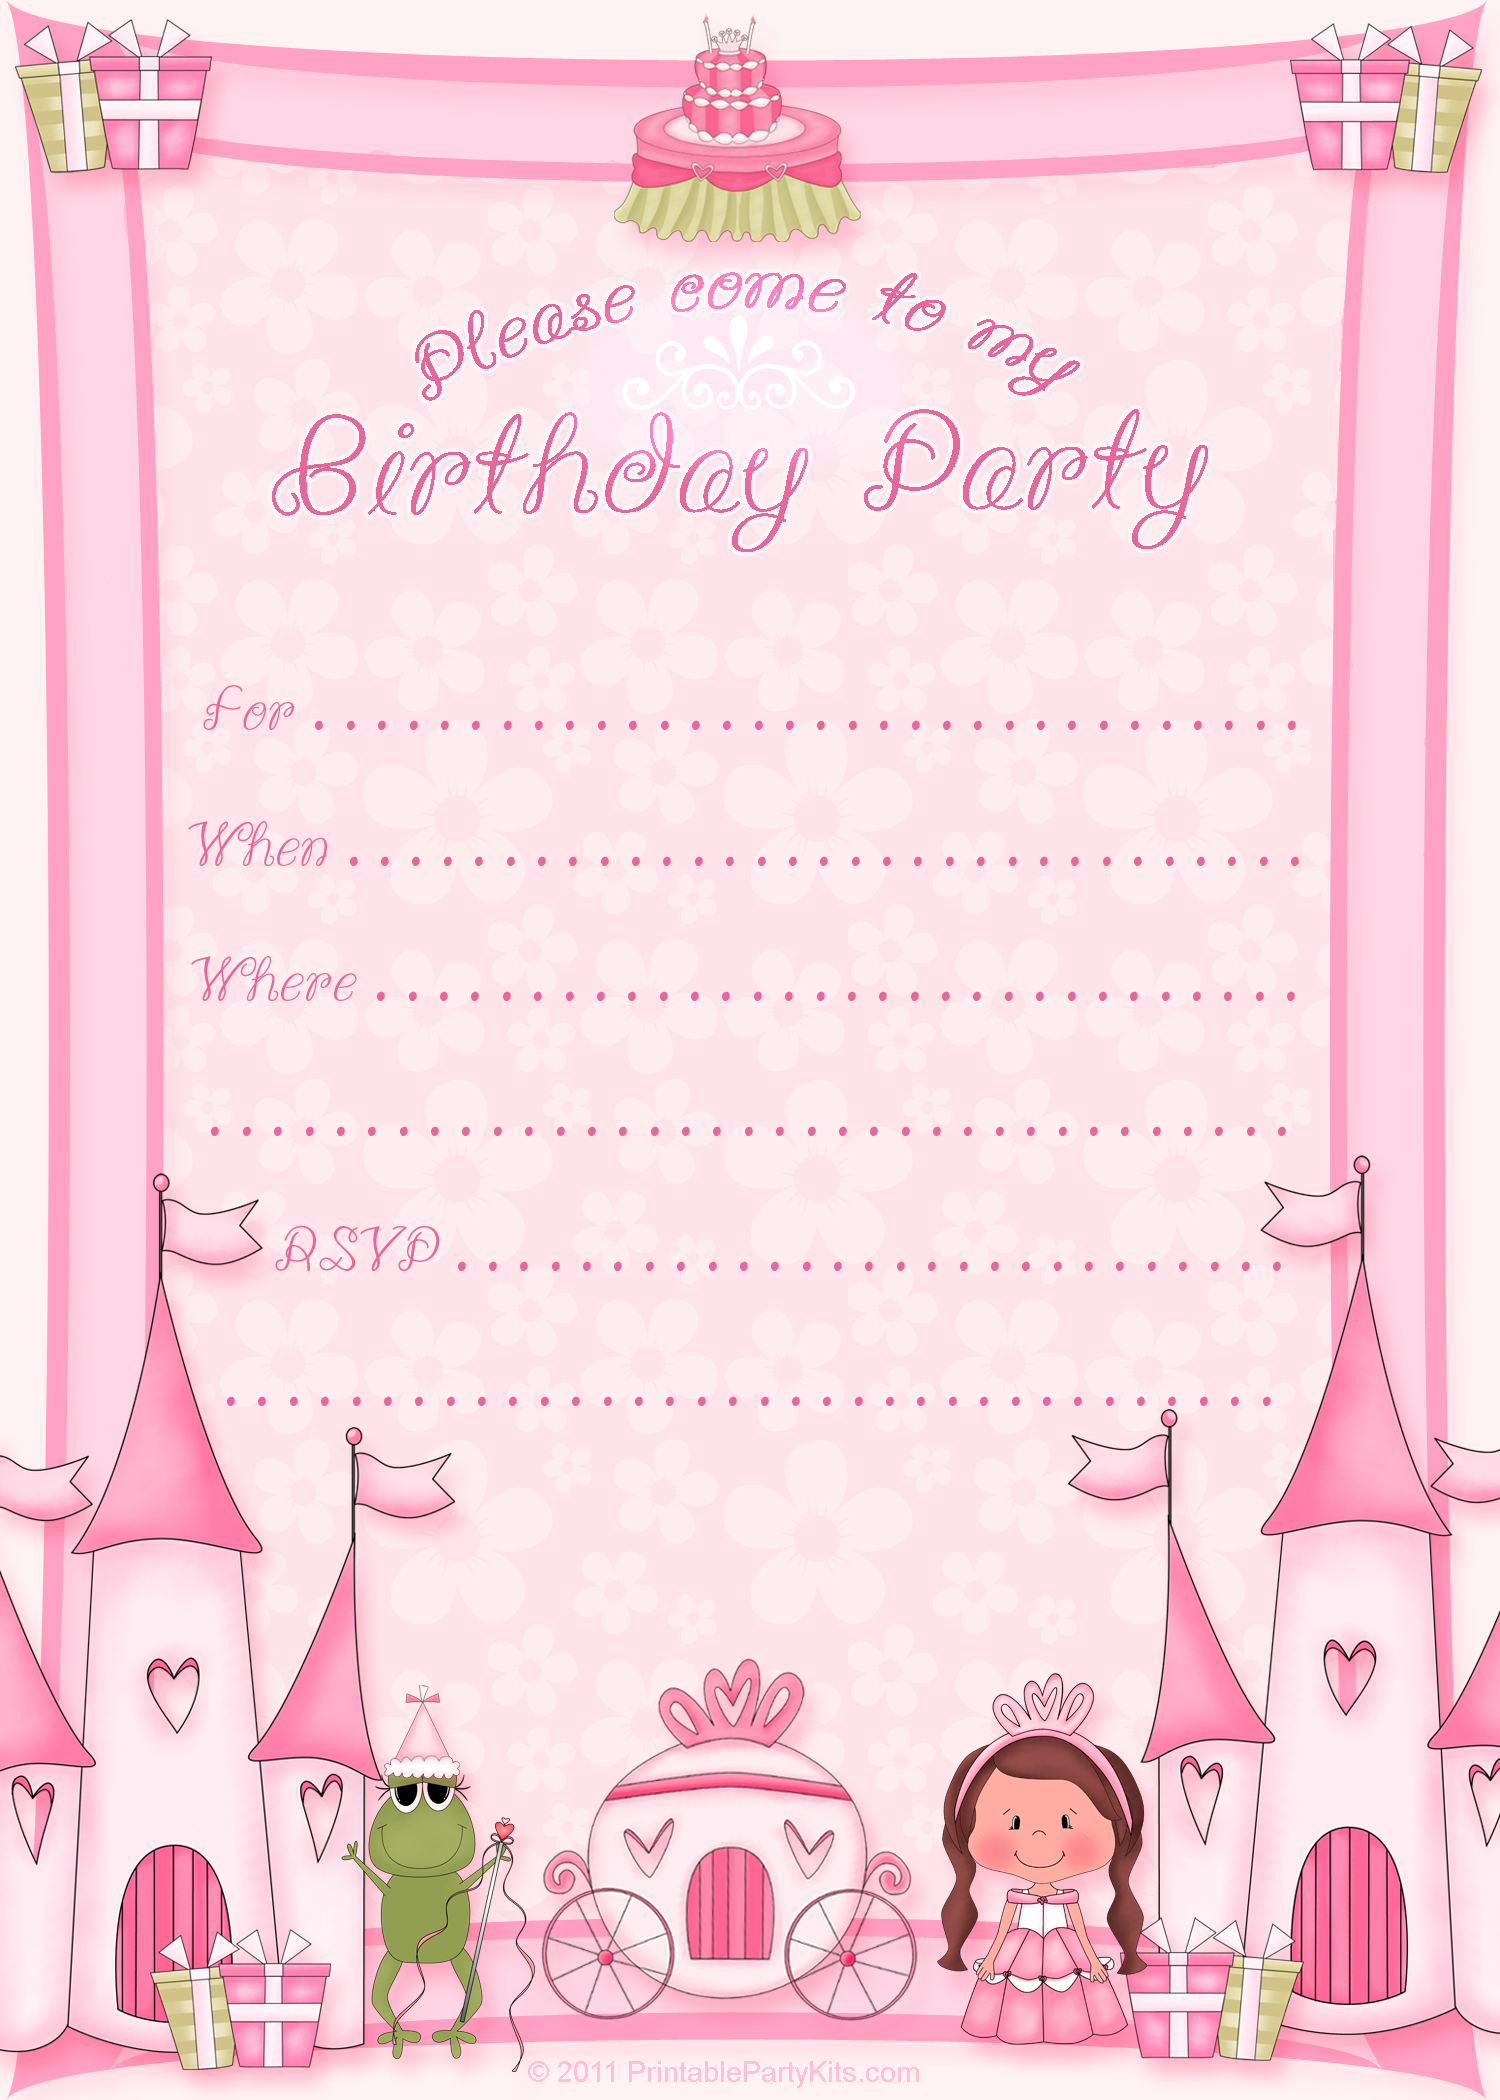 7 Images of Princess Birthday Invitations Printable